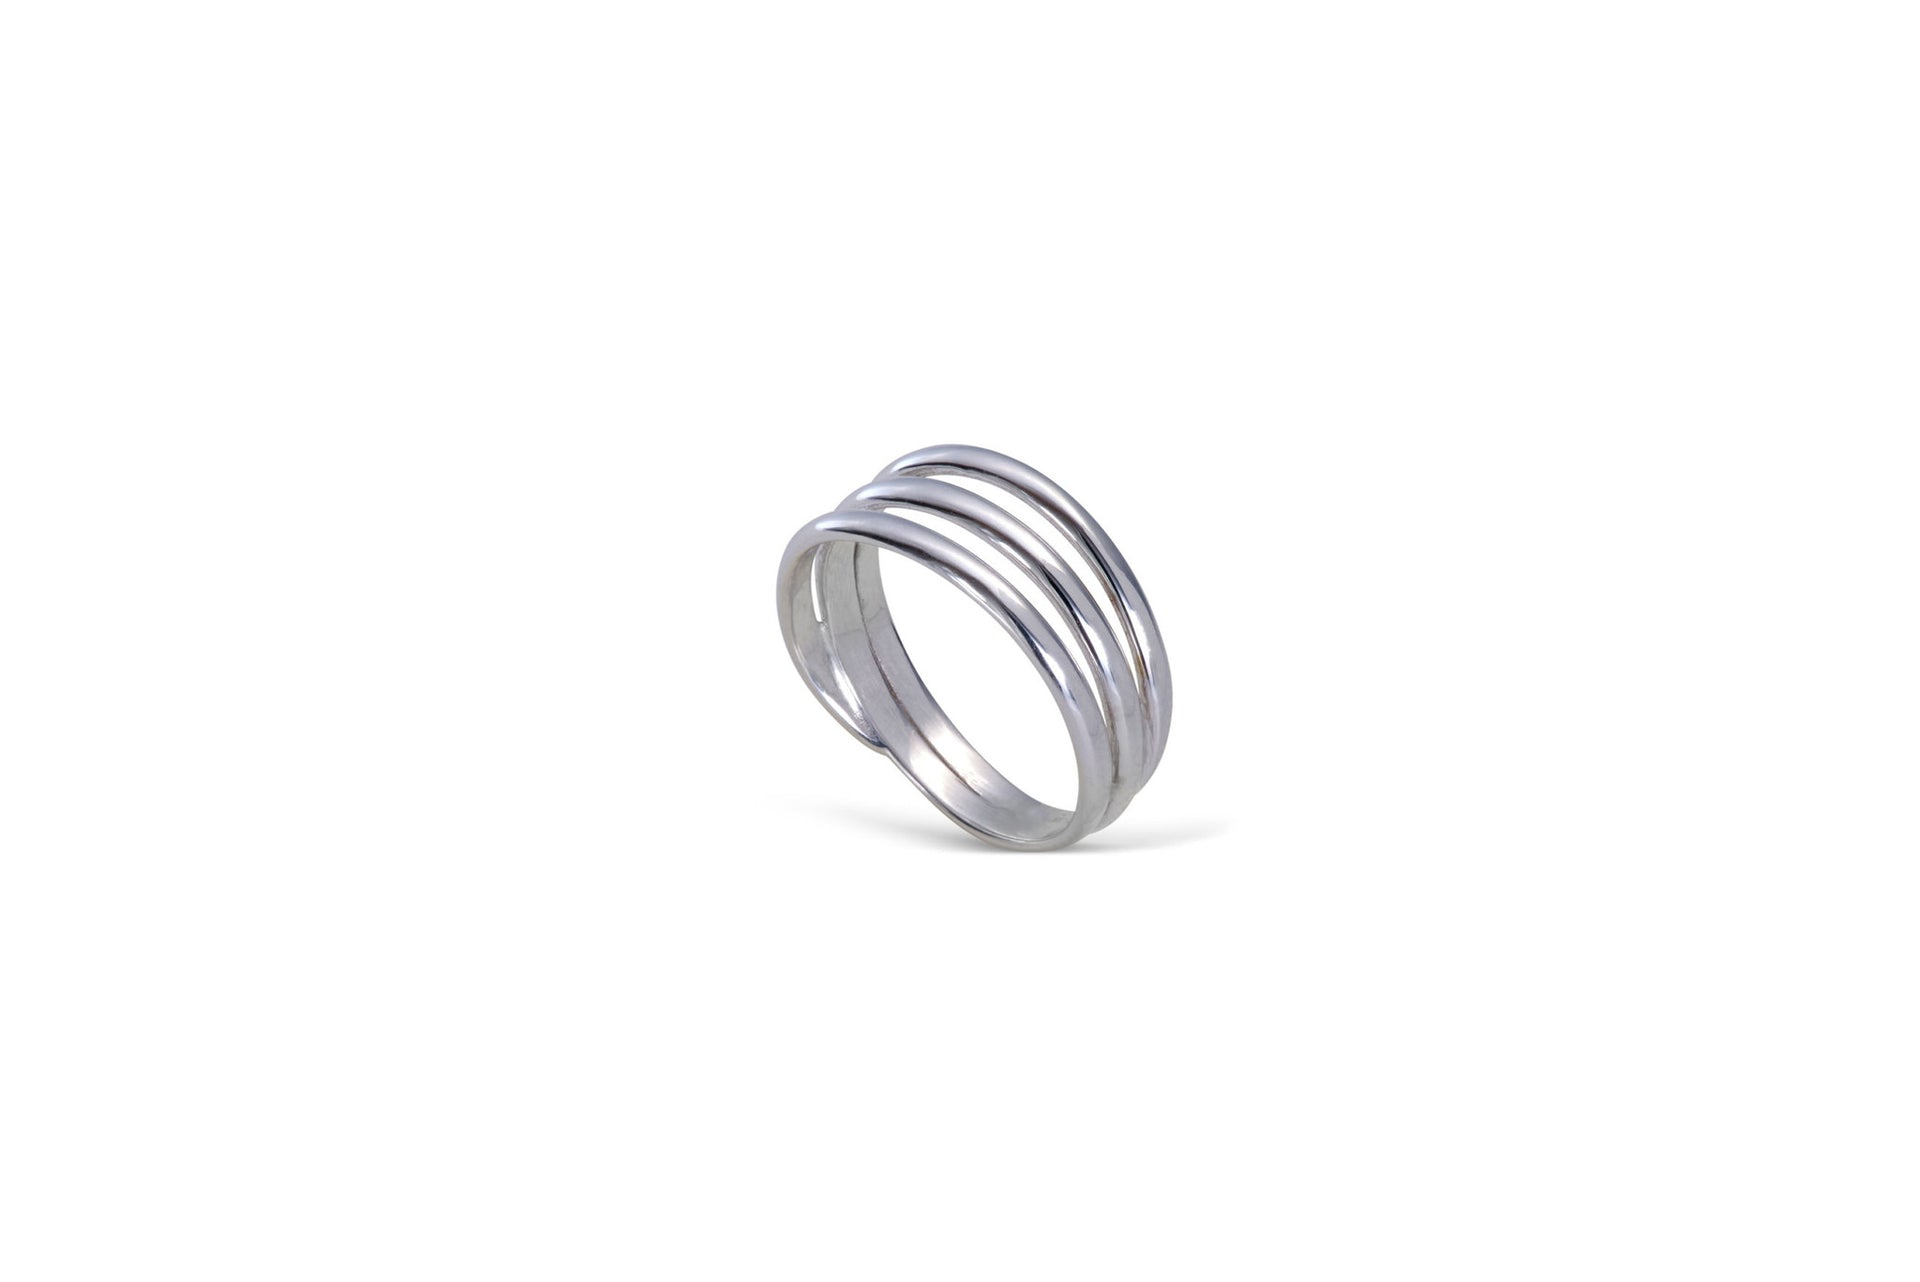 Signature Trio ring solid white gold by KarenAsh New York